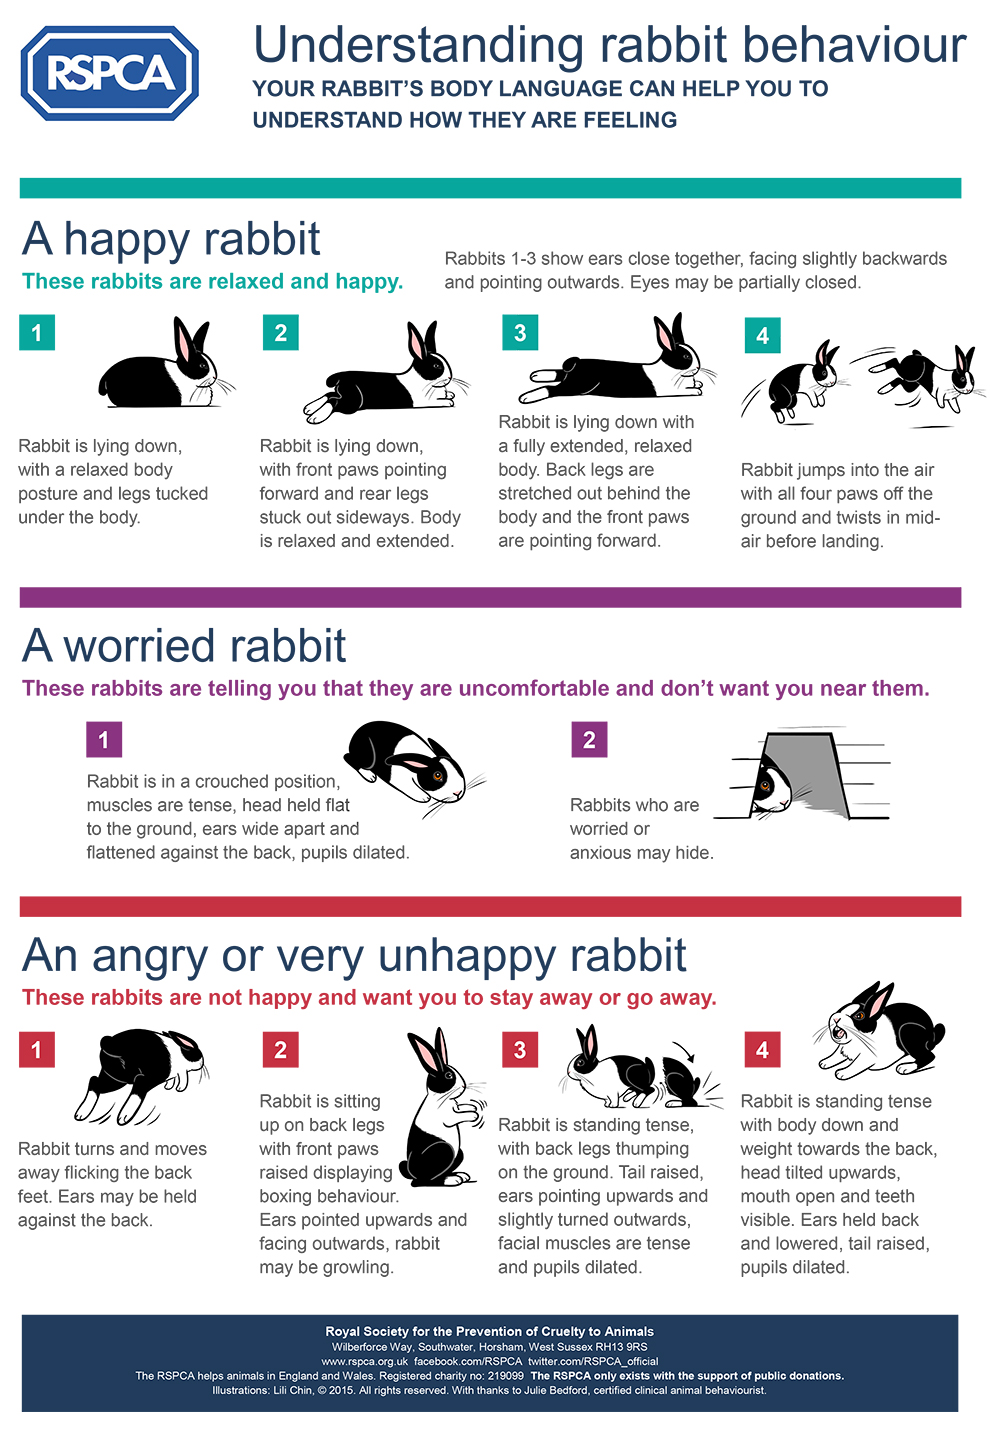 RSPCA Understanding Rabbit Behaviour